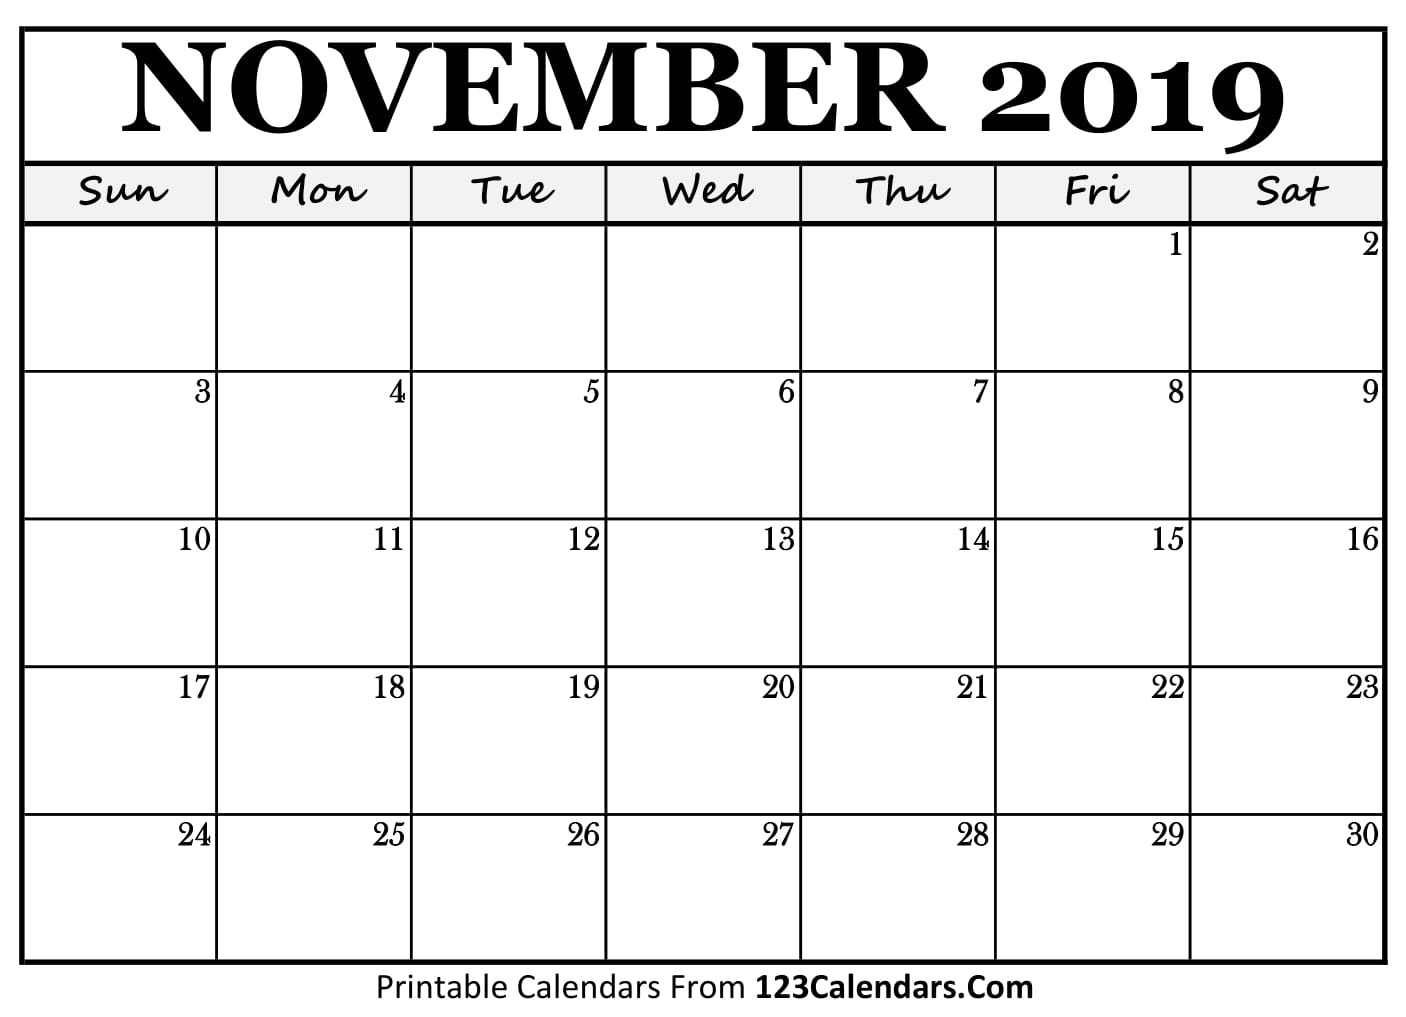 USA UK November Calendar Template 2018 Holidays November 2018 Calendar Printable